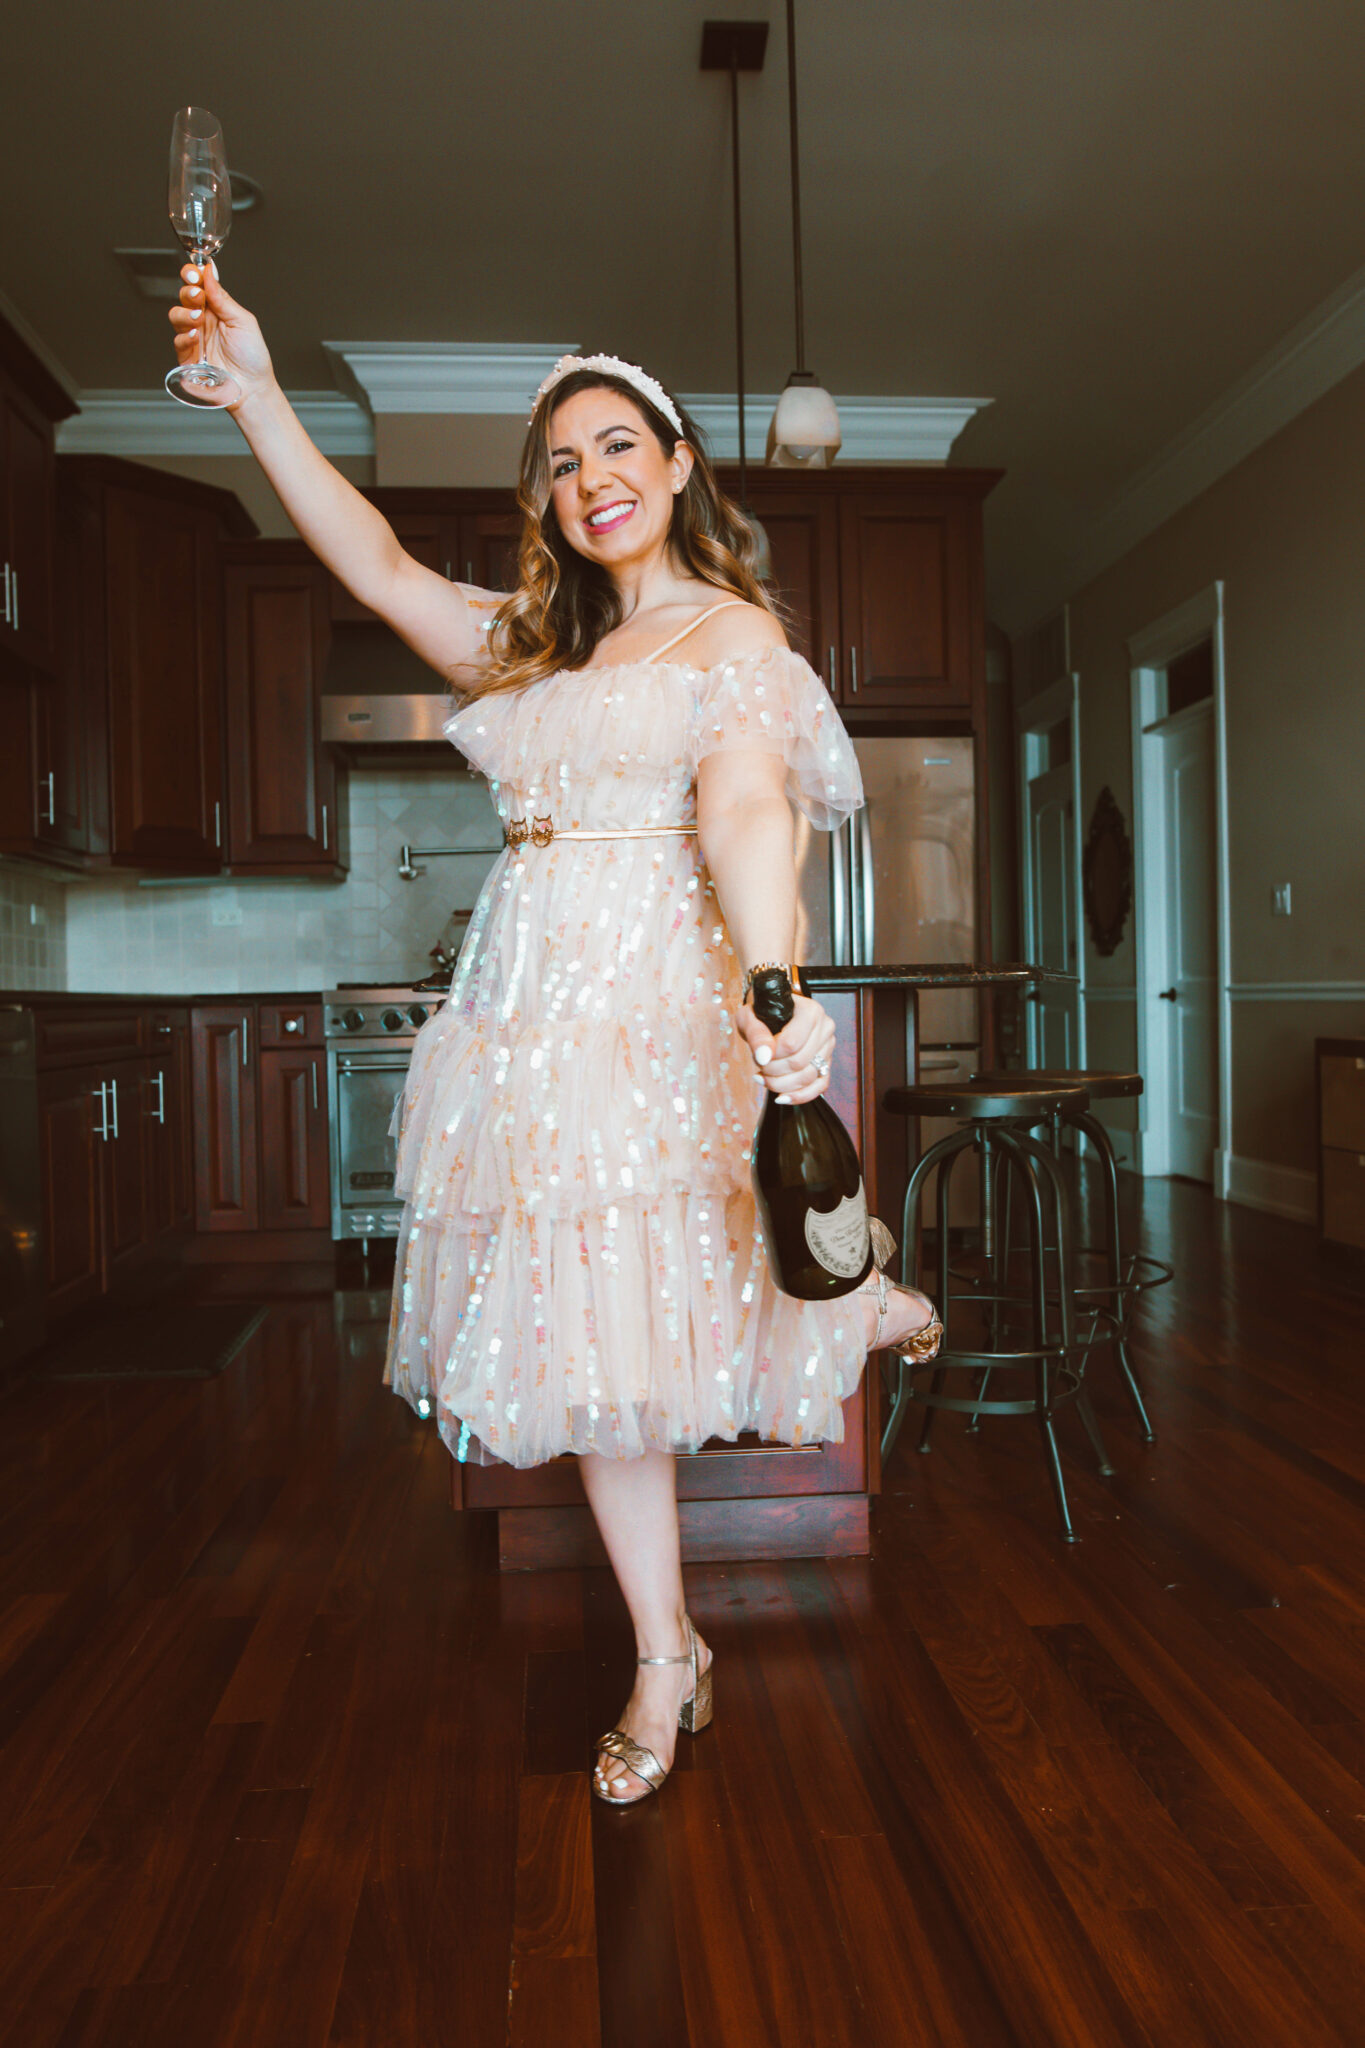 Party Dress by popular Chicago fashion blog, Glass of Glam: image of a woman holding a champagne flute and wearing a sequin party dress, pearl embellished knot headband, and Gucci block heel sandals.